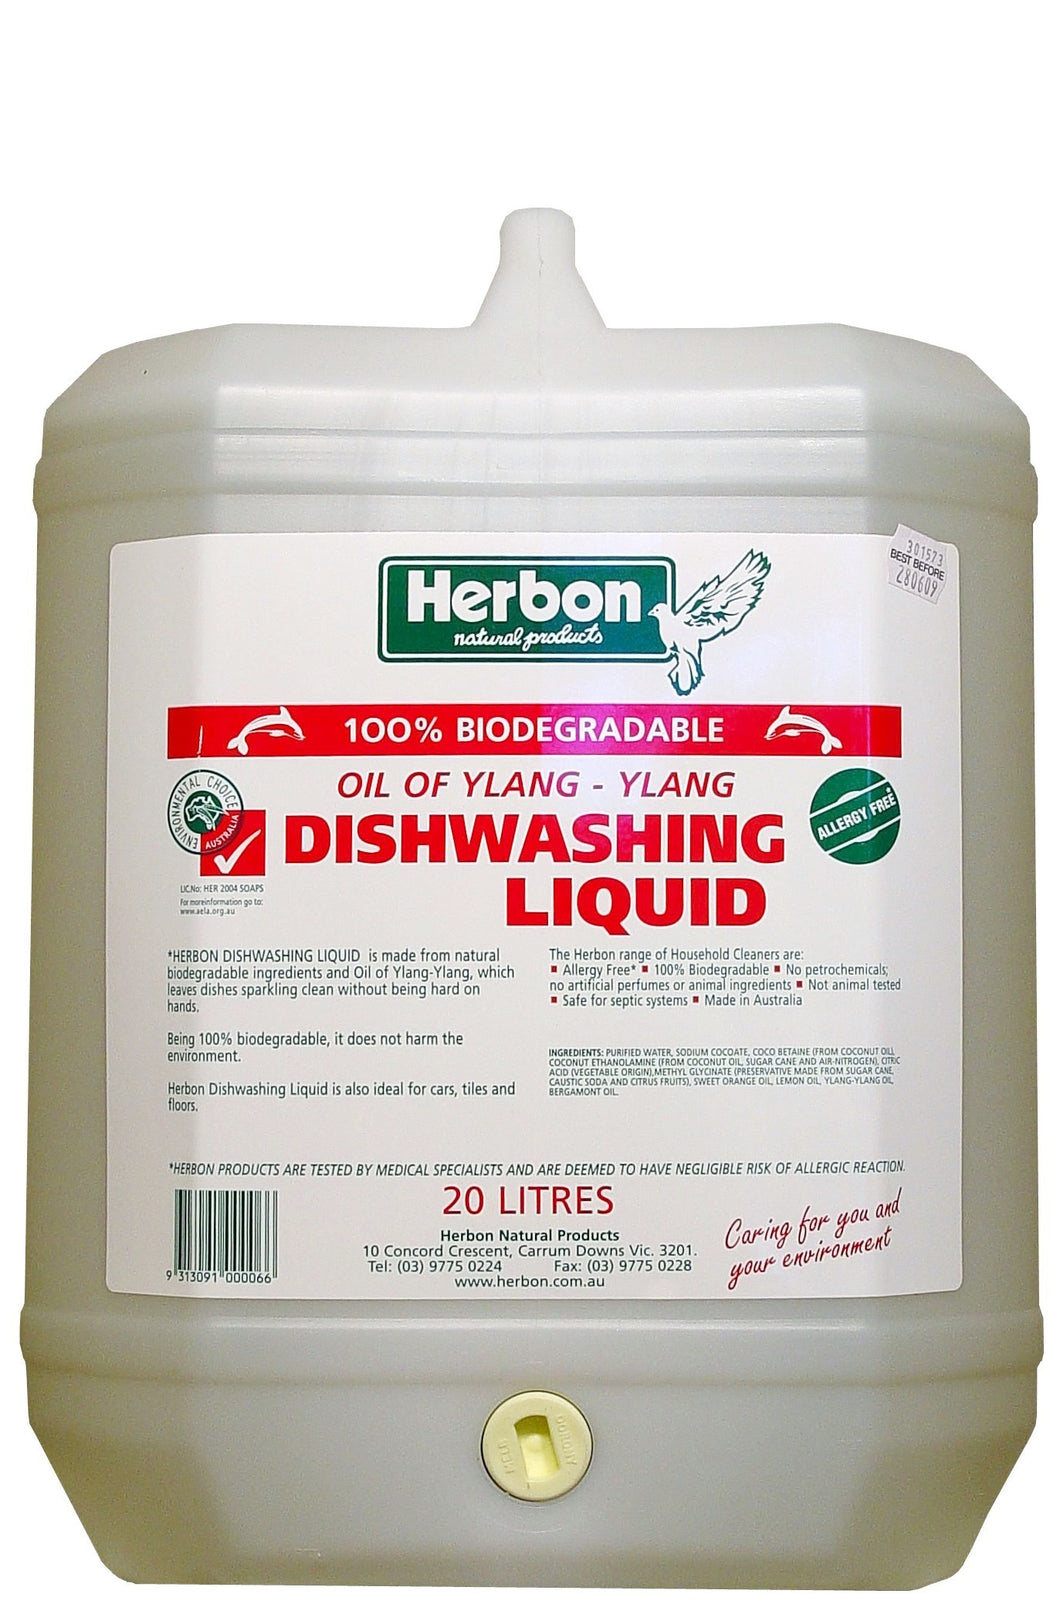 Herbon, Dishwashing Liquid, Oil of Ylang, Dishwashing Liquid, Fragrance Free, Naturally Biodegradable, 20 Litres